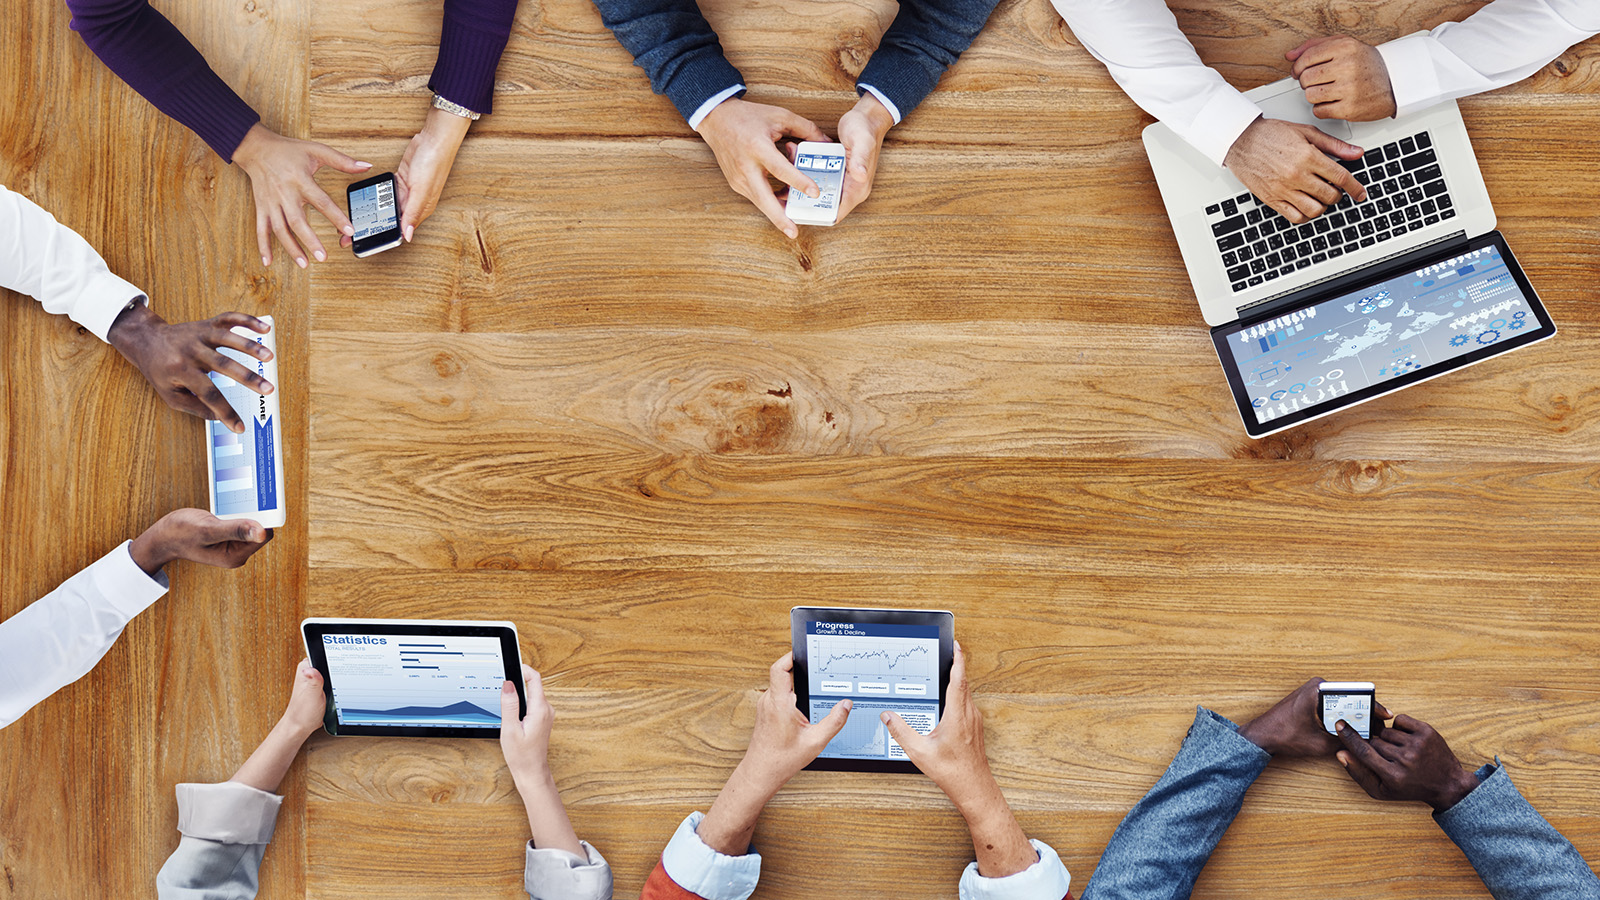 Business People Working with Technology